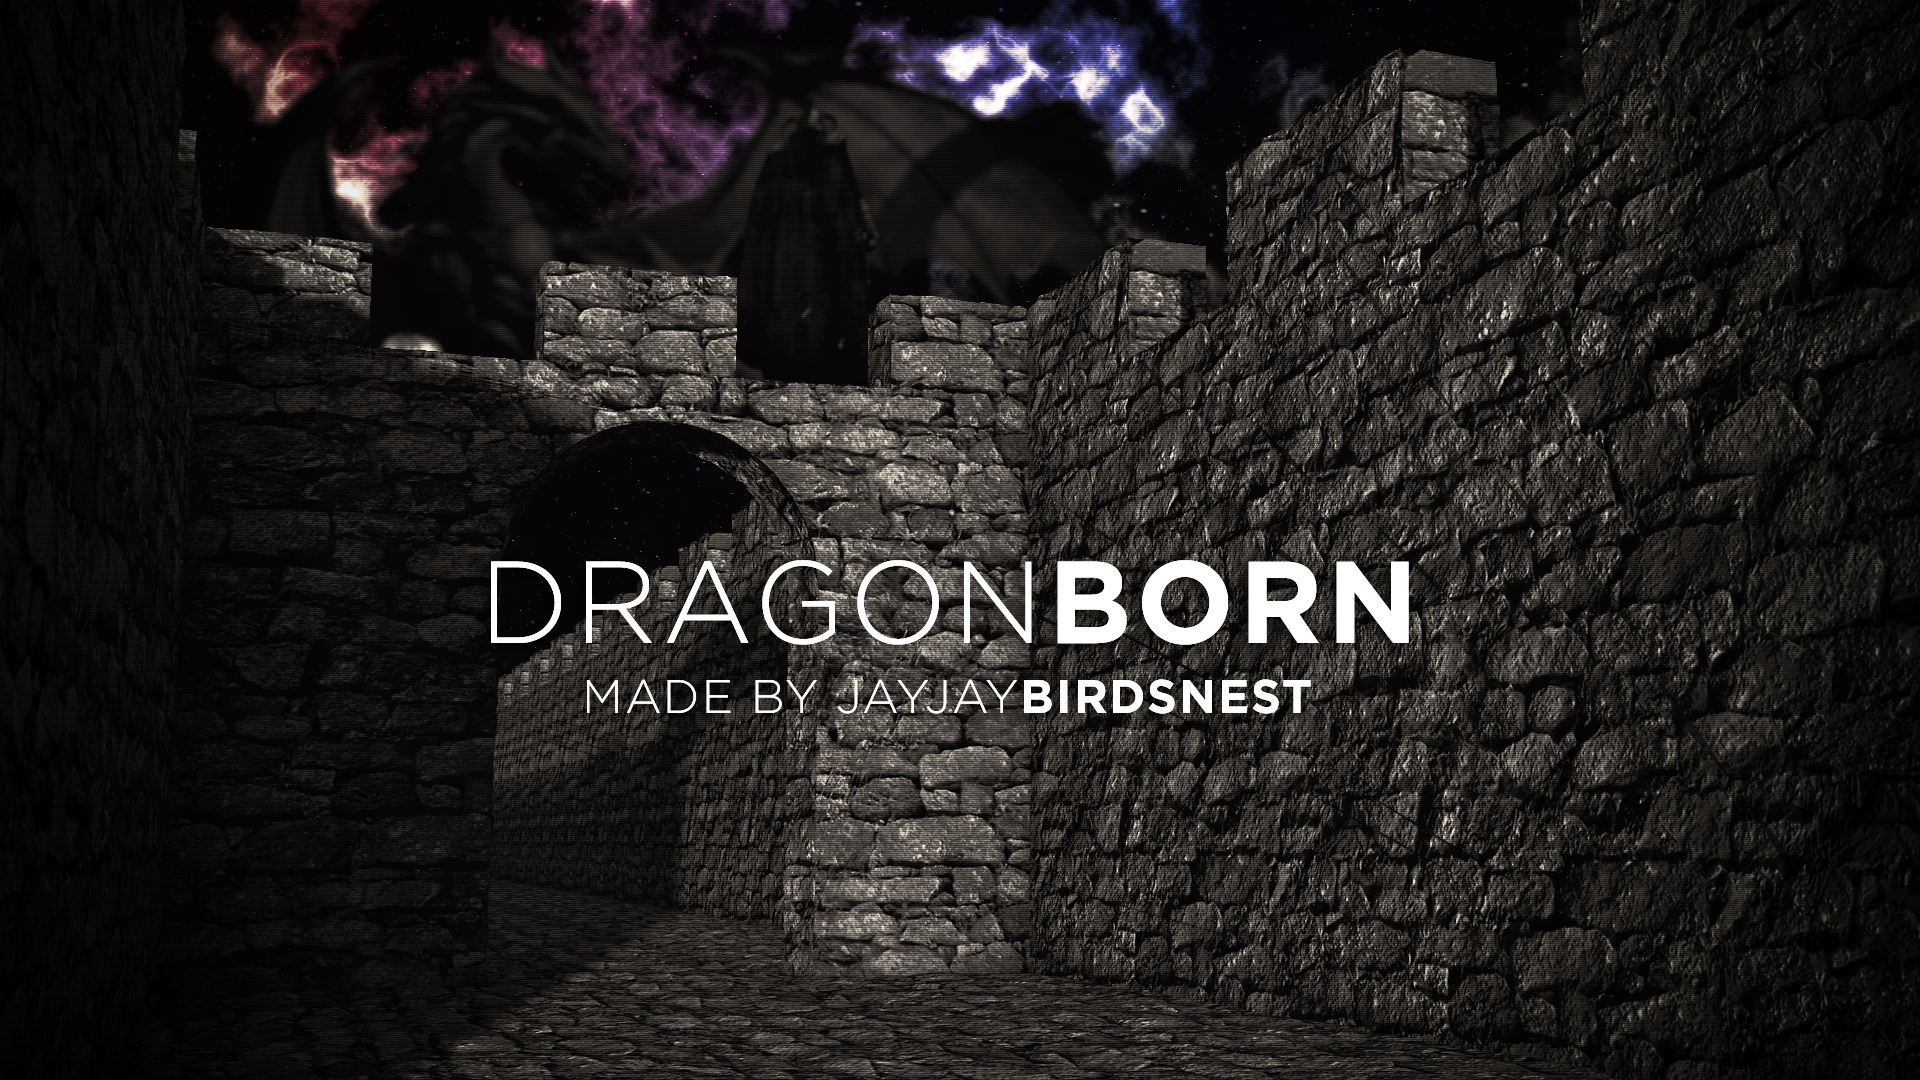 dragonborn skyrim wallpaperjayjaybirdsnest on deviantart